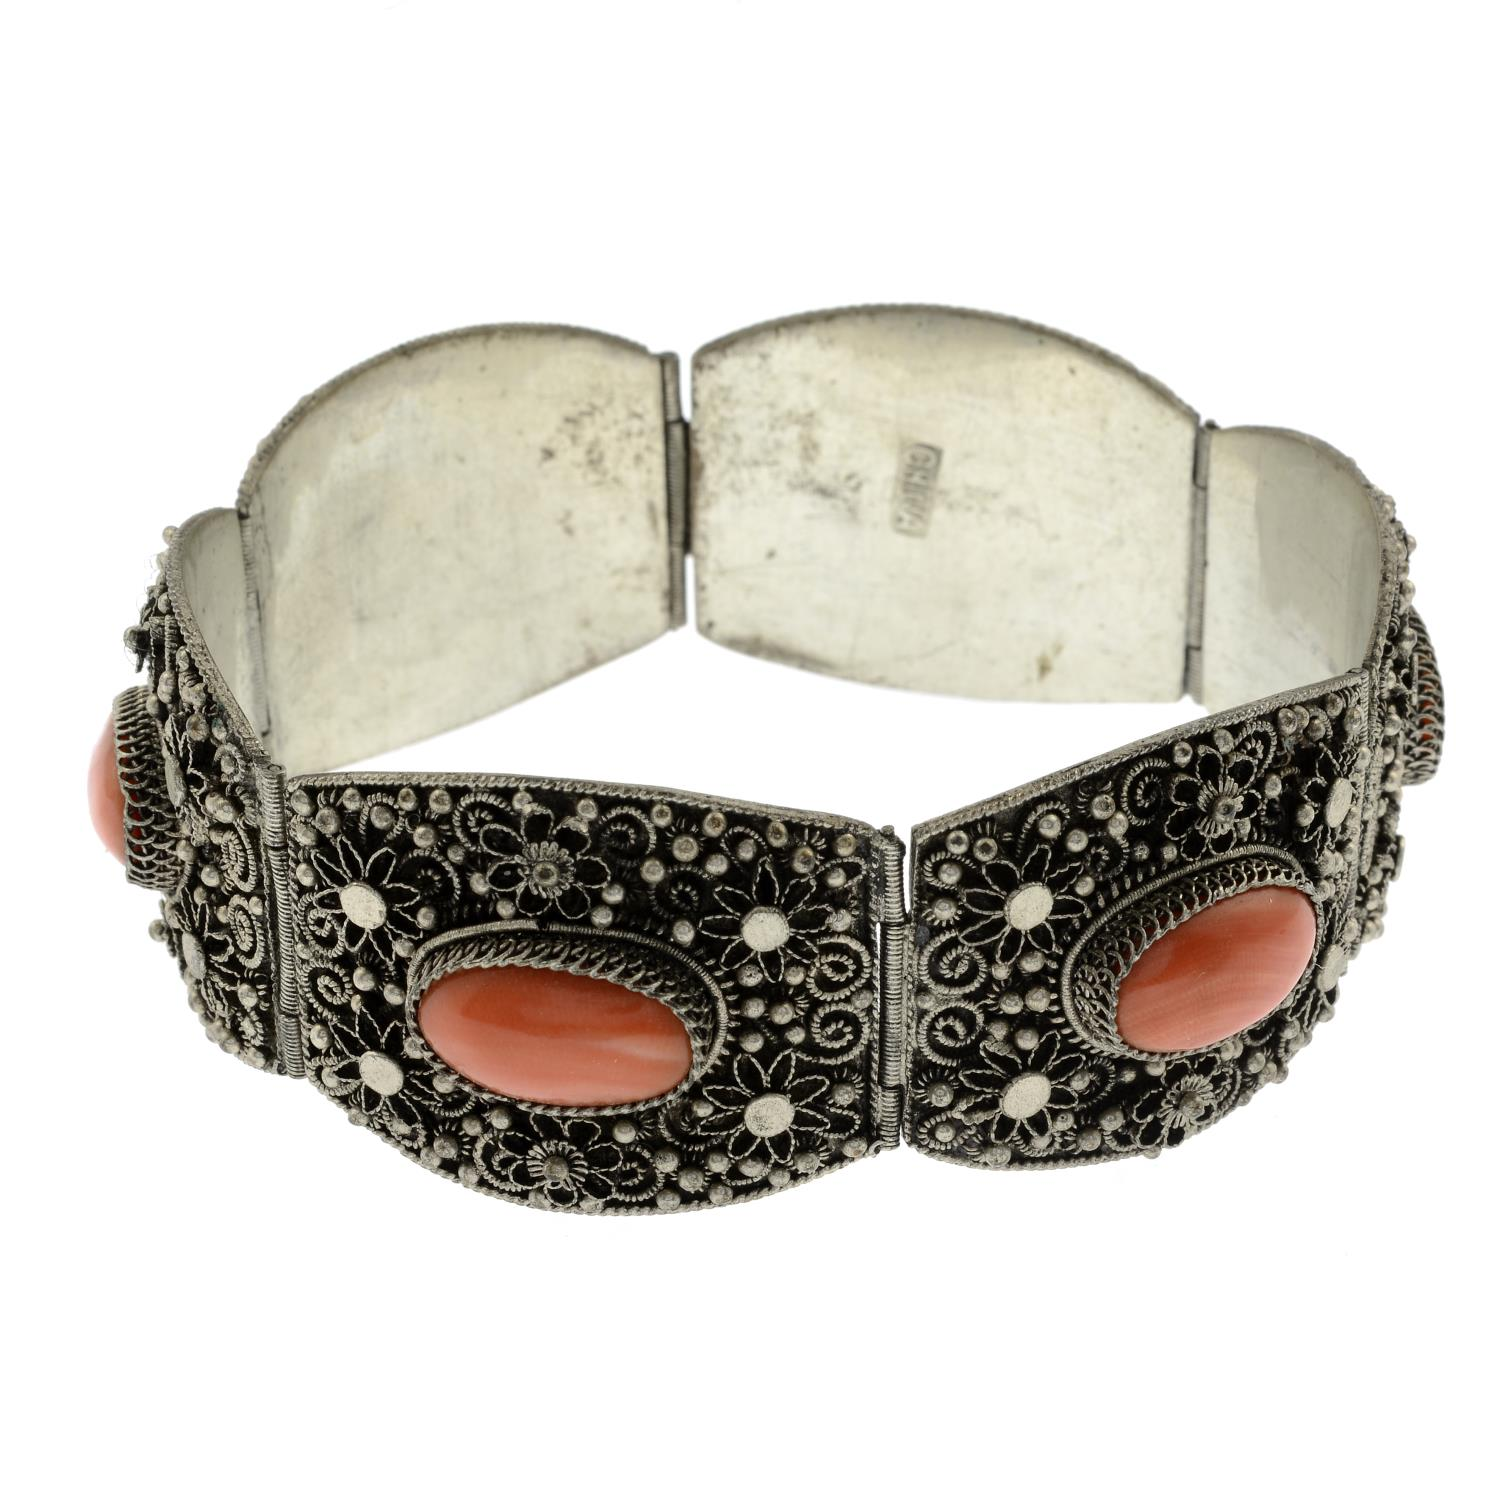 A selection of ceramic and marcasite costume jewellery, to include a coral bracelet.